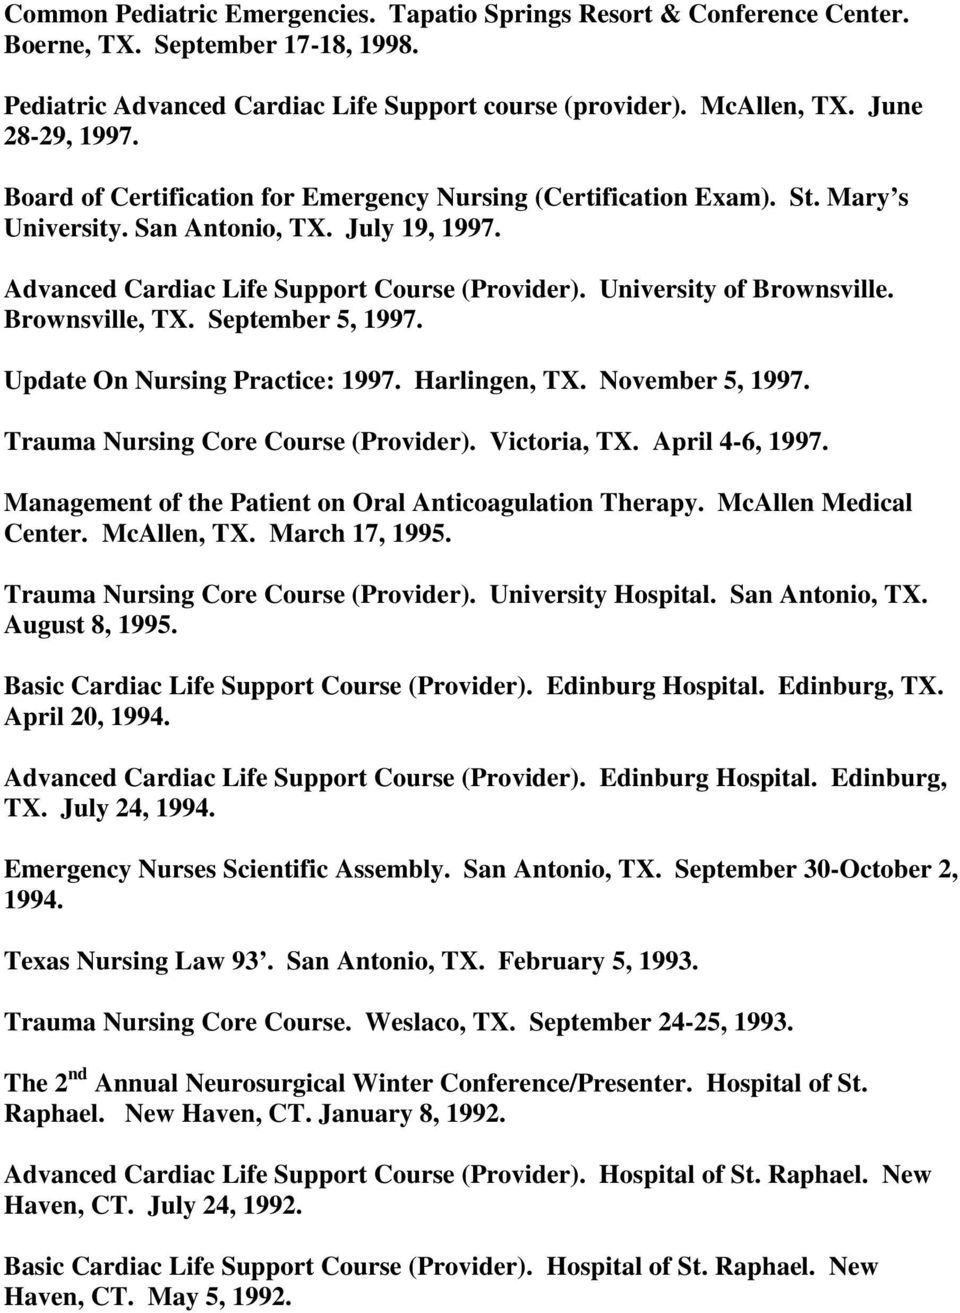 Brownsville, TX. September 5, 1997. Update On Nursing Practice: 1997. Harlingen, TX. November 5, 1997. Trauma Nursing Core Course (Provider). Victoria, TX. April 4-6, 1997.